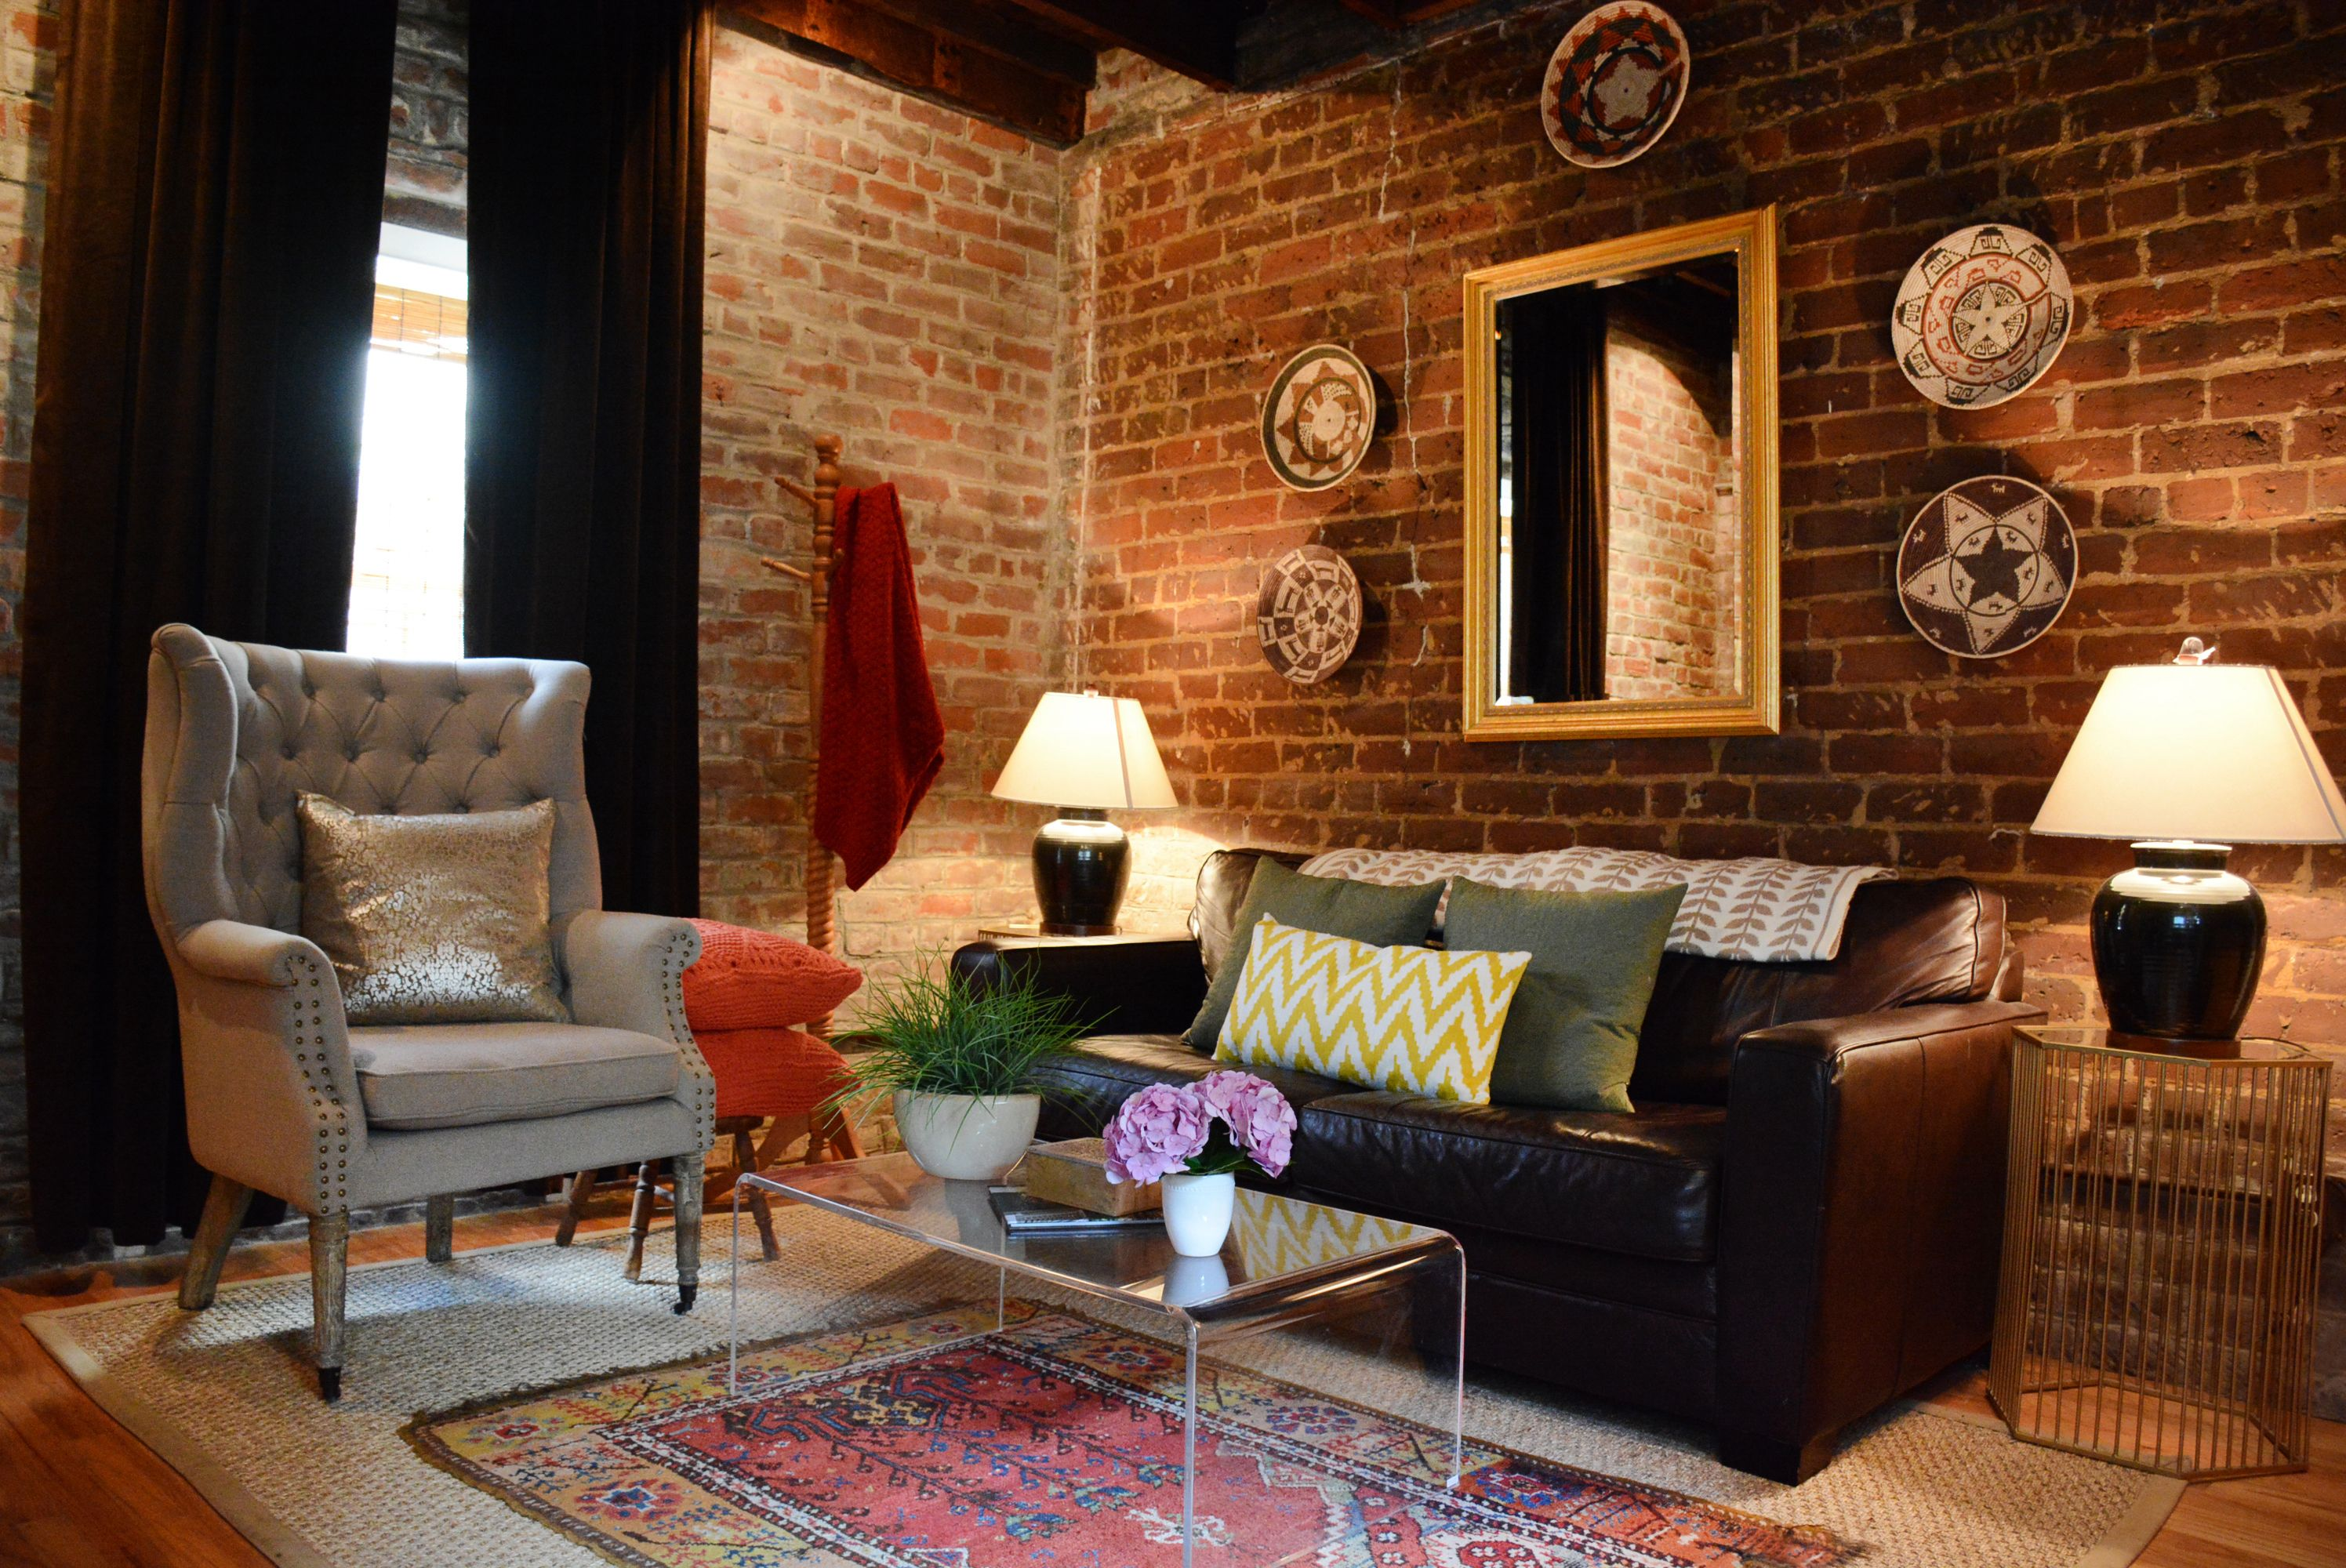 Sycamore carriage house savannah rentals lucky savannah we are pleased to be able to offer a variety of pet friendly vacation rentals to make your trip